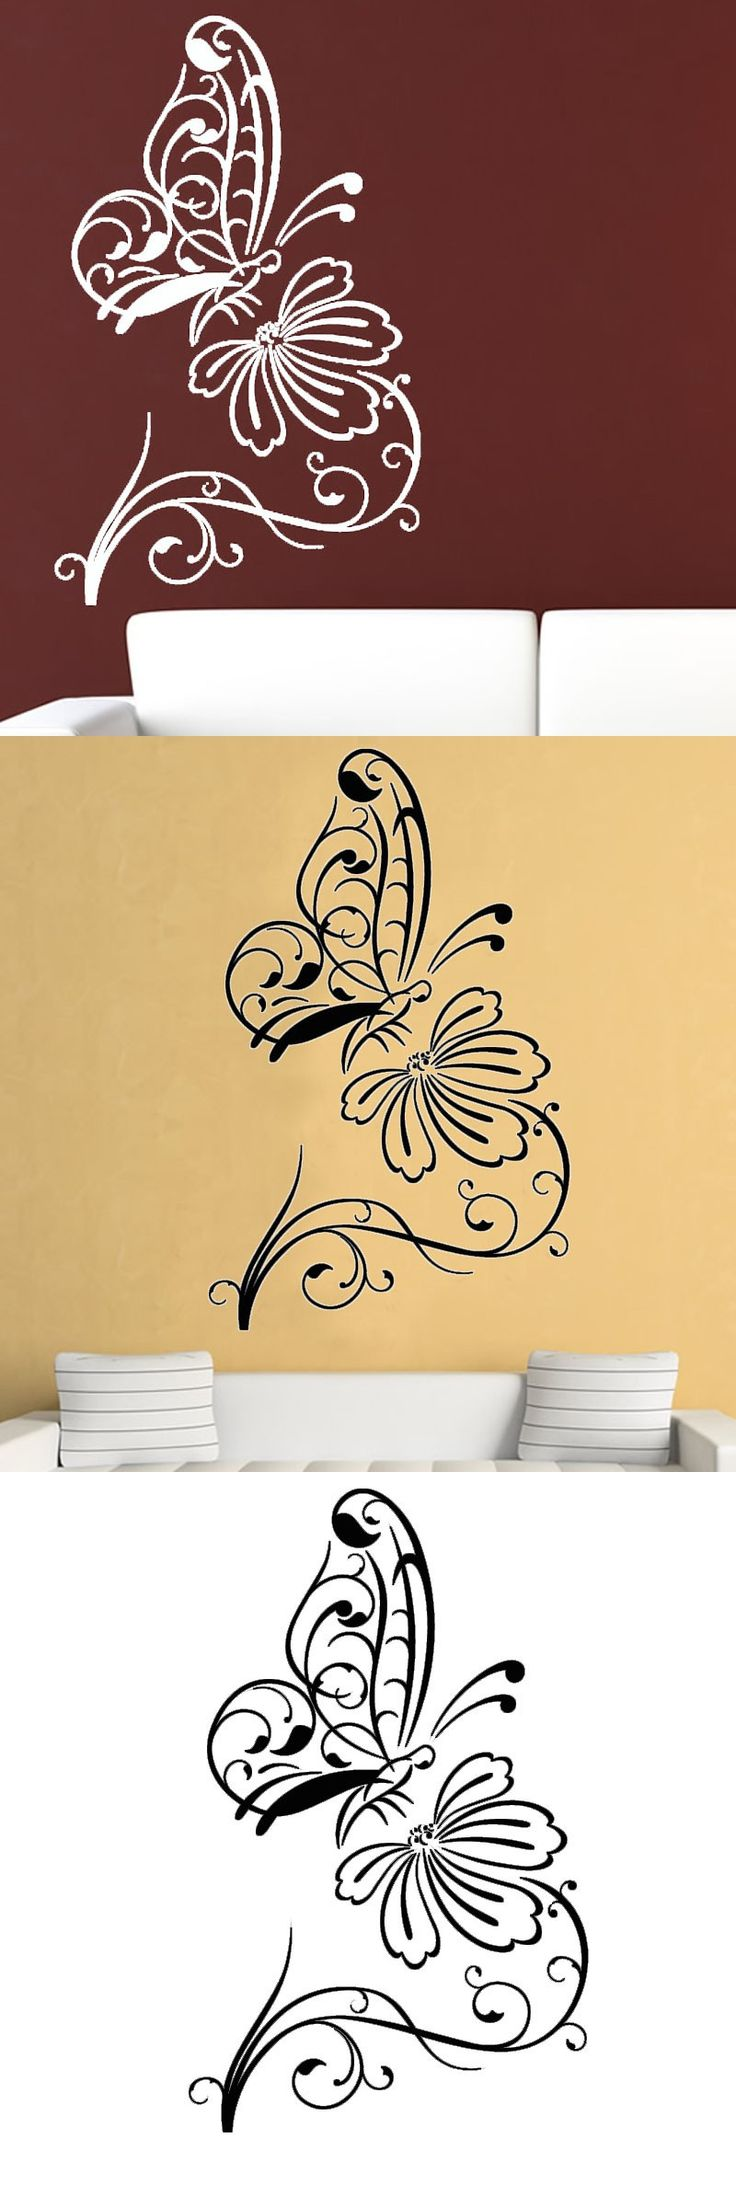 11 best Adorable Floral and Plant Wall Stickers images on ...